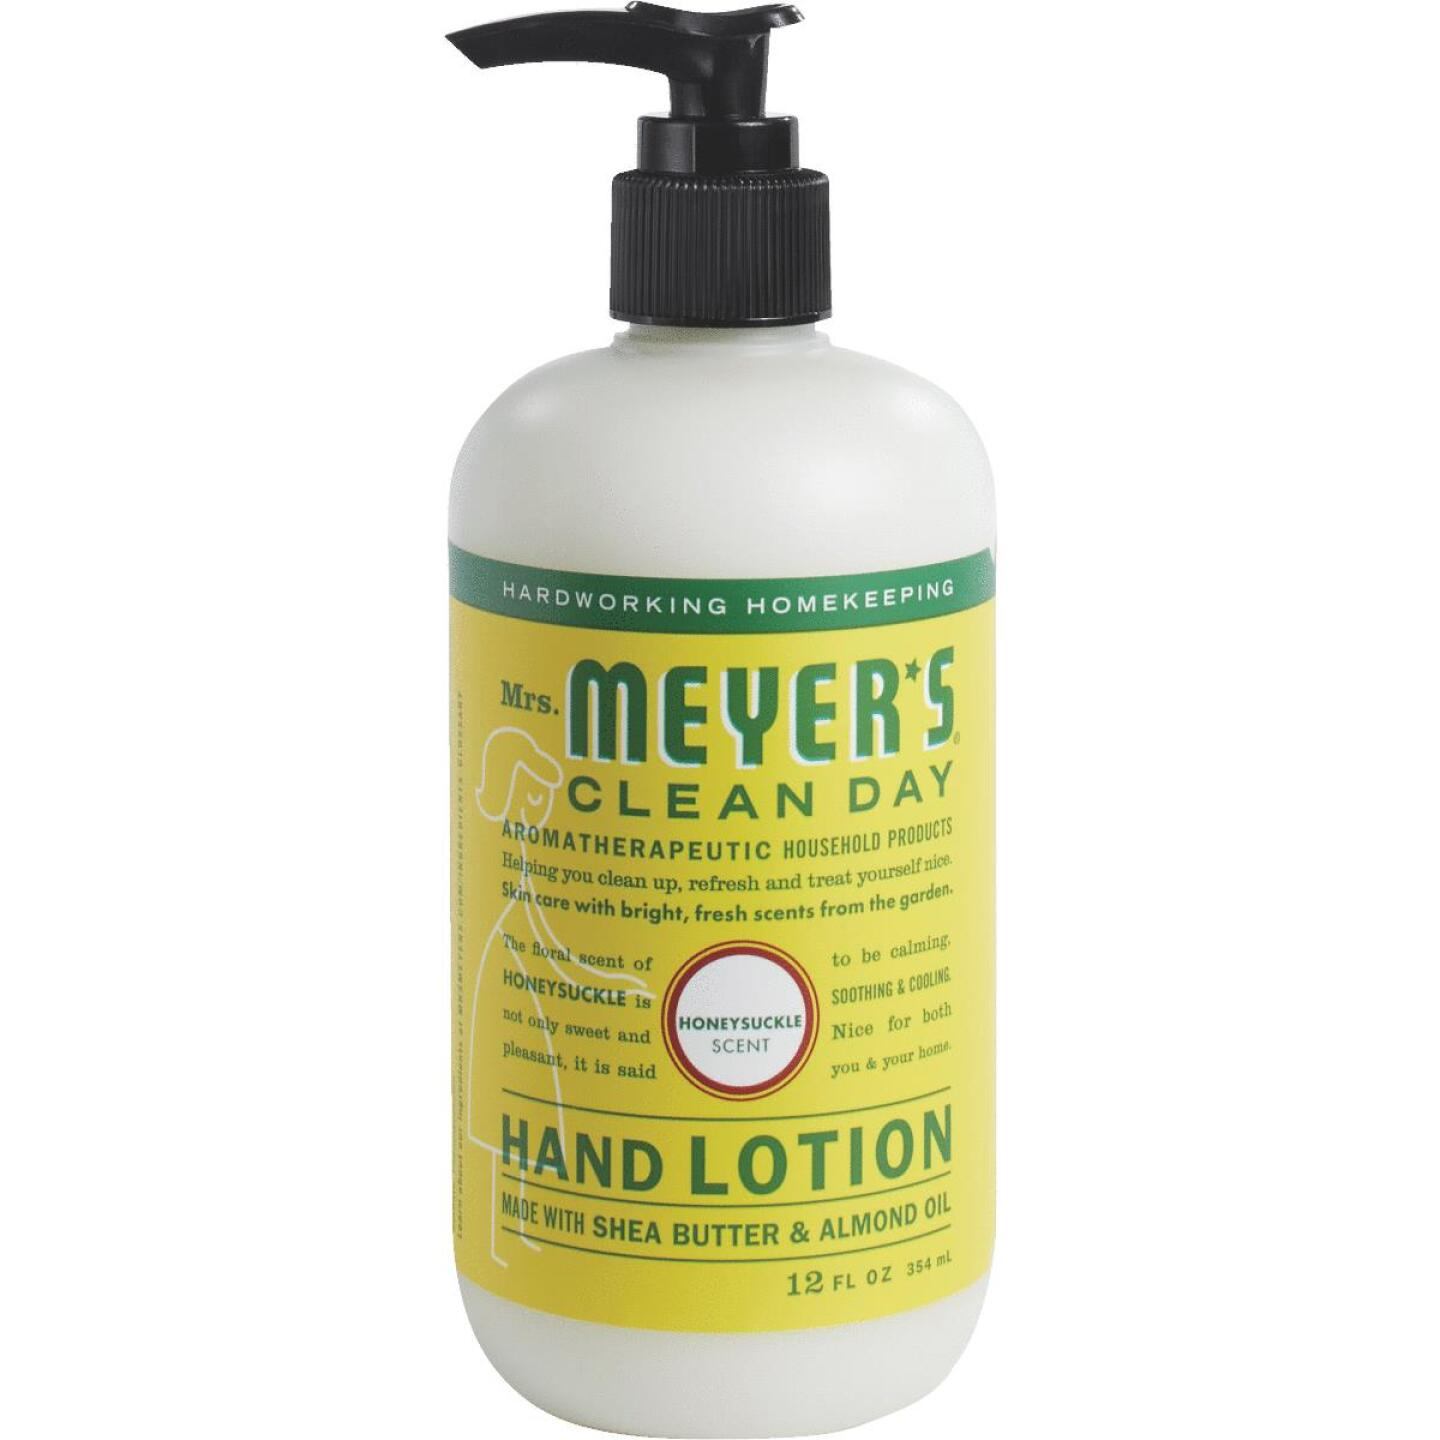 Mrs. Meyer's Clean Day 12 Oz. Honeysuckle Hand Lotion Image 1